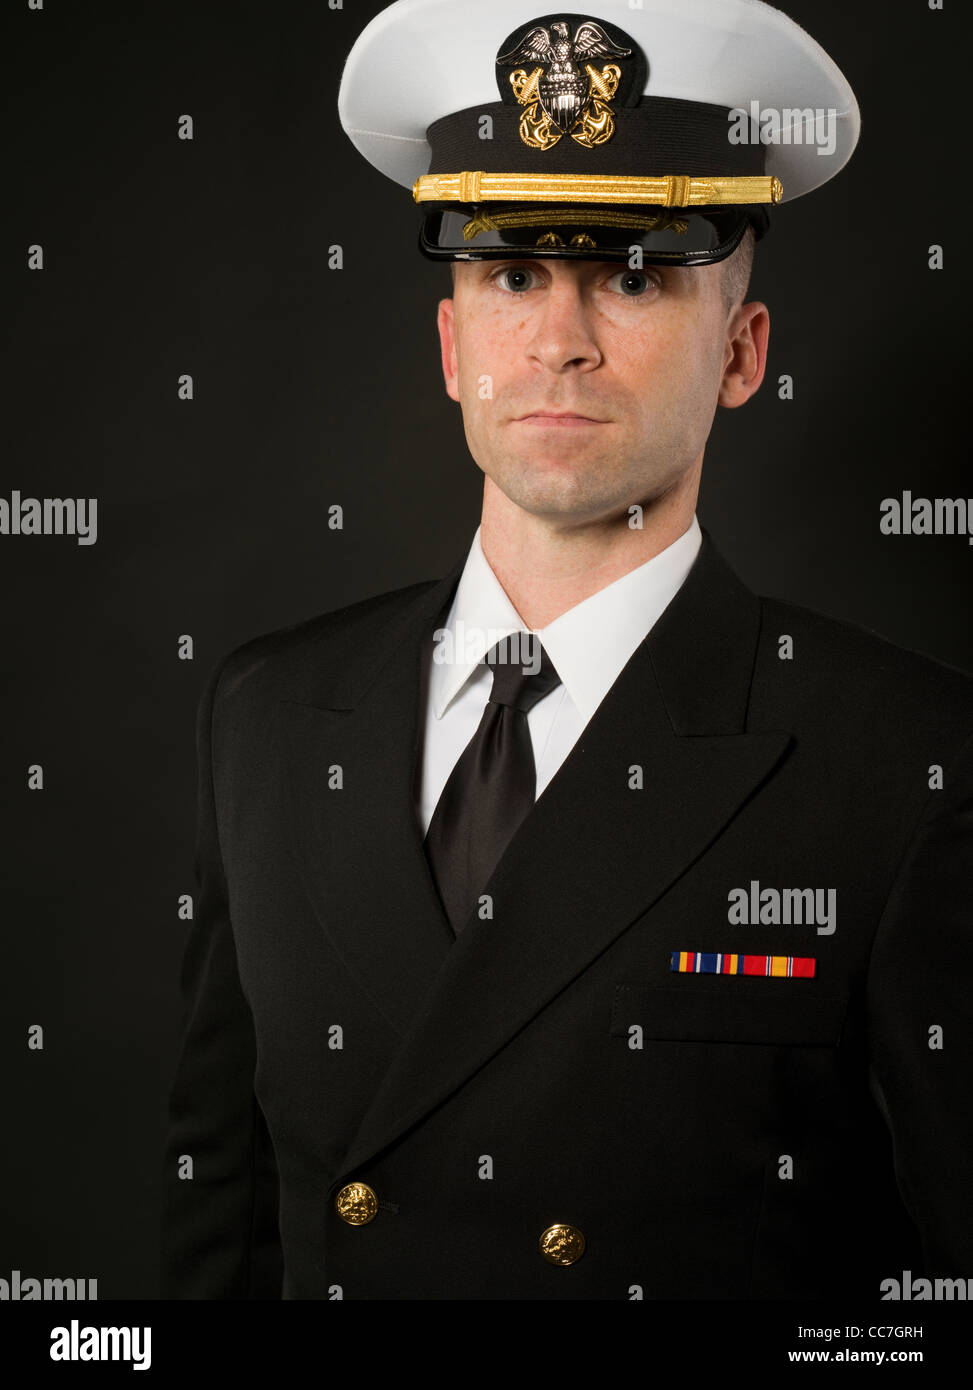 United States Navy Officer in Service Dress Blues Uniform with Combination Cover ( hat ) - Stock Image